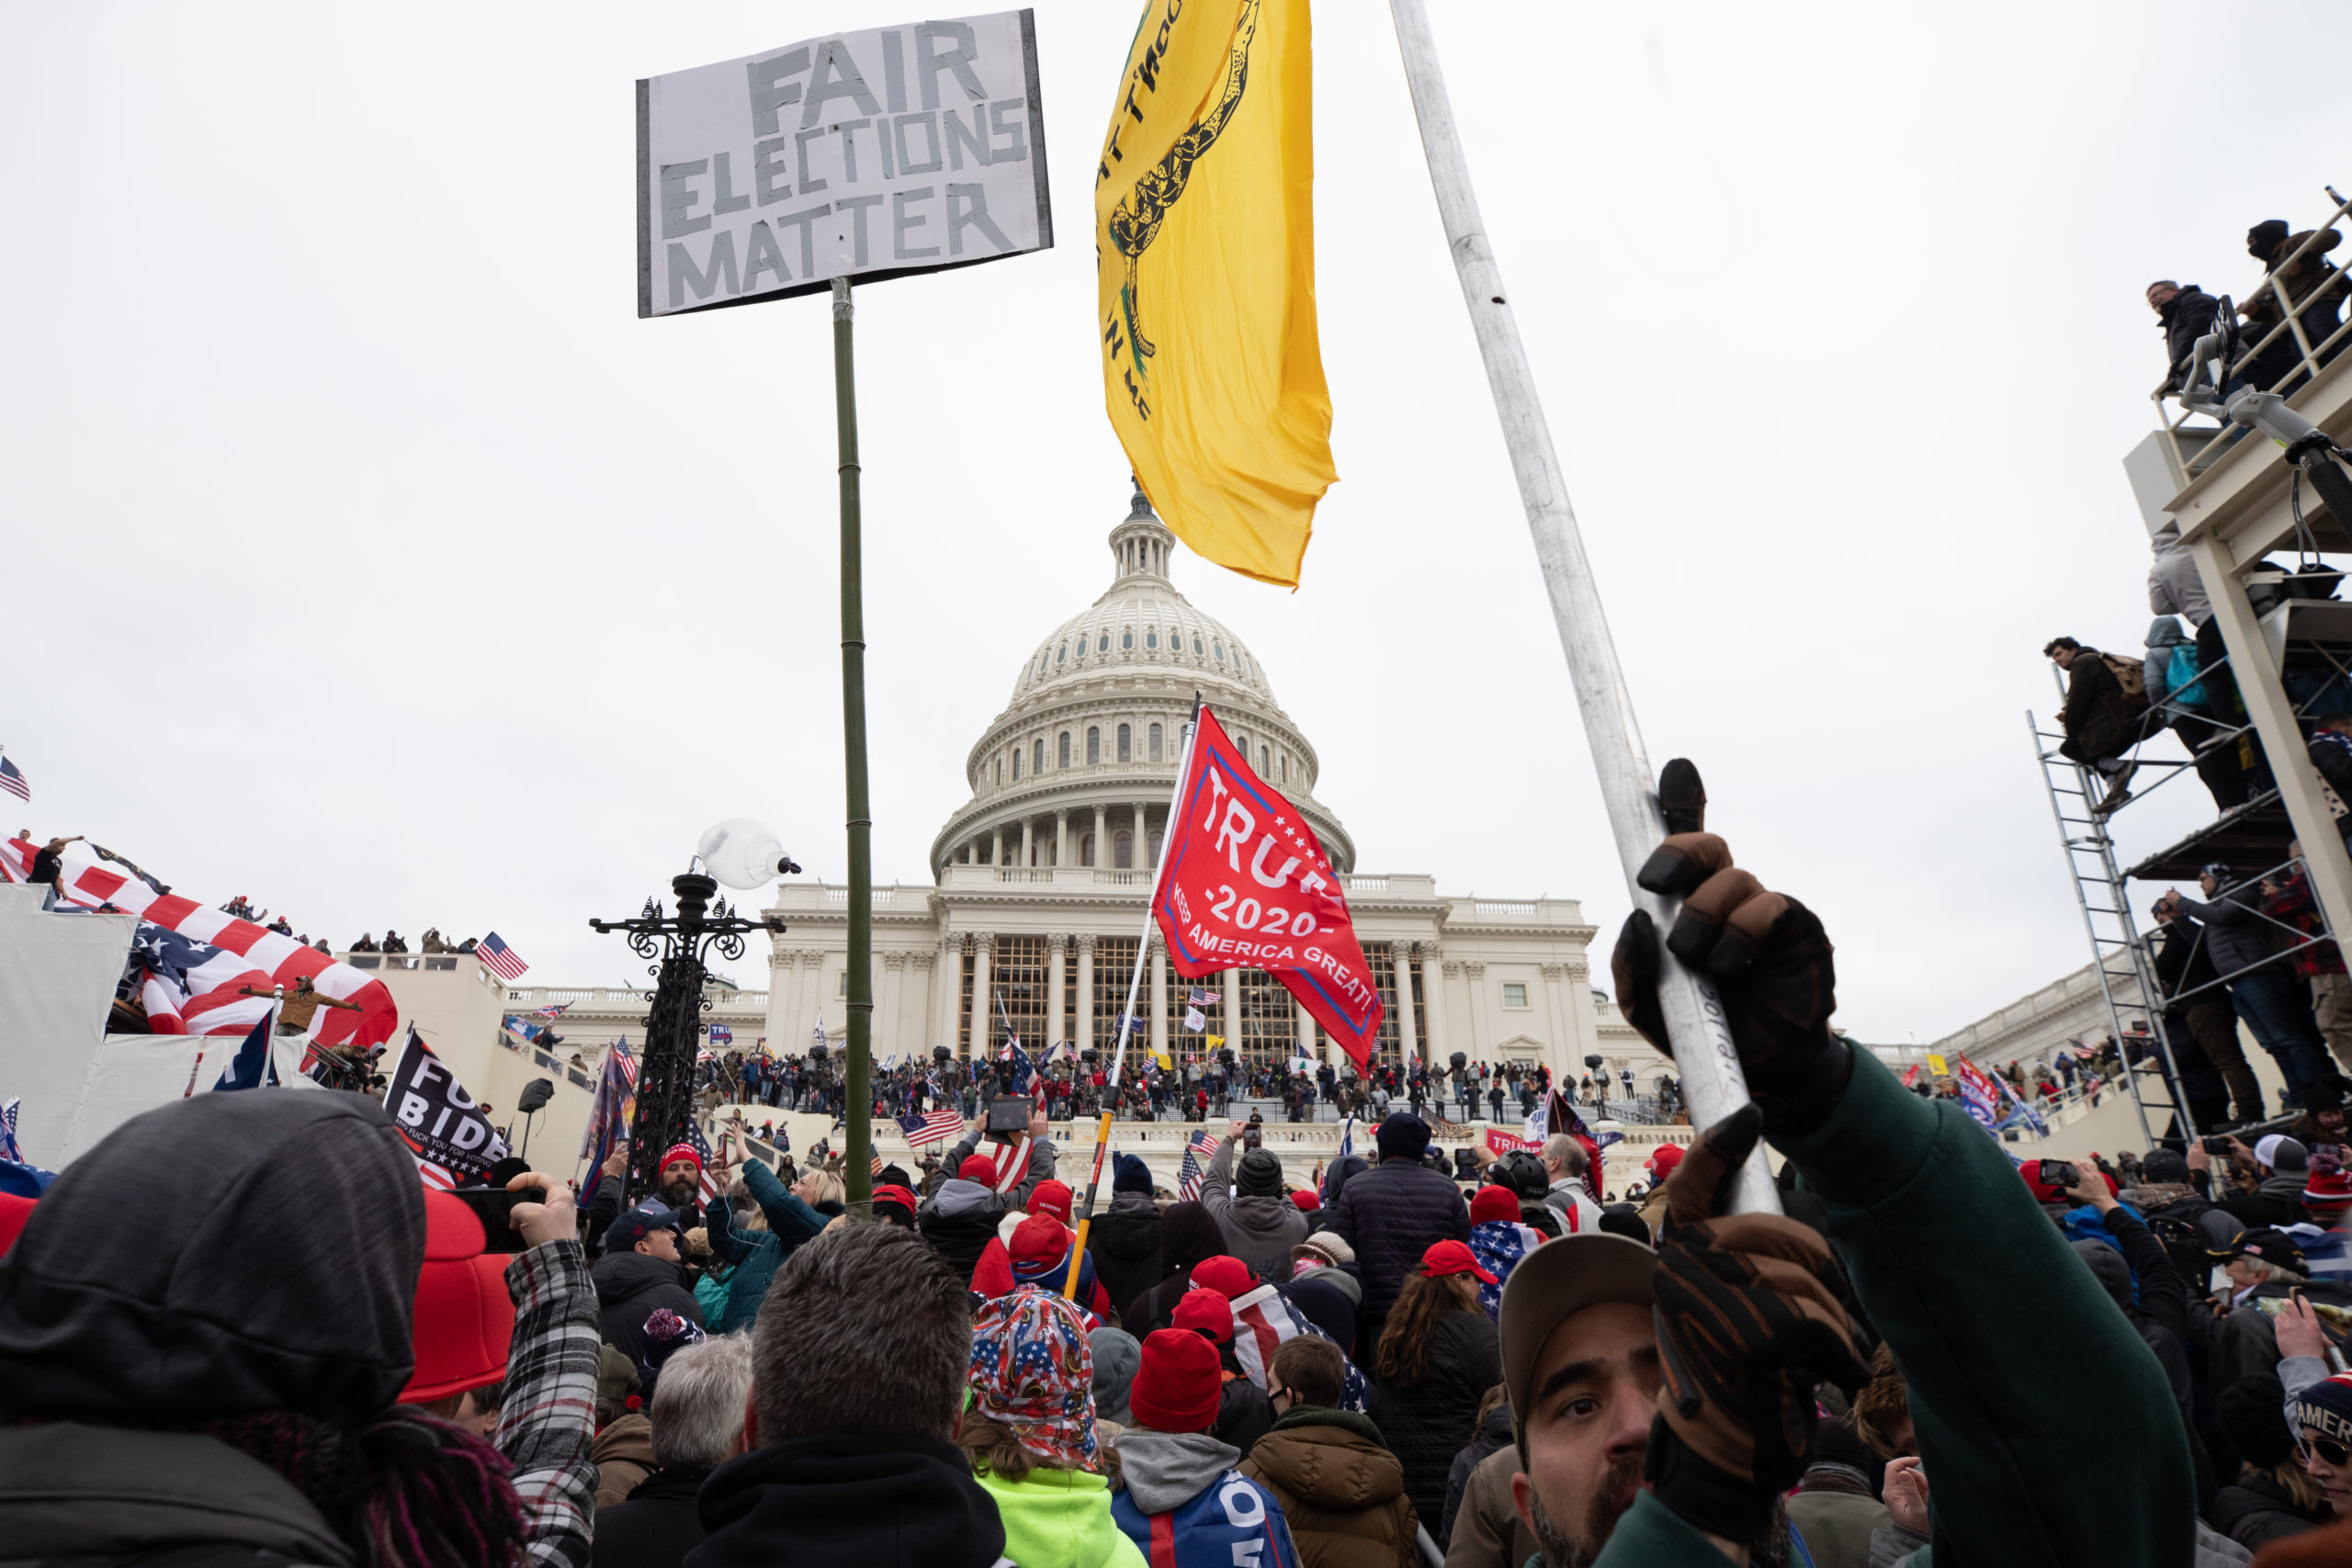 A crowd of Trump supporters march toward the U.S. Capitol on Wednesday. (Kaylee Greenlee/Daily Caller News Foundation)